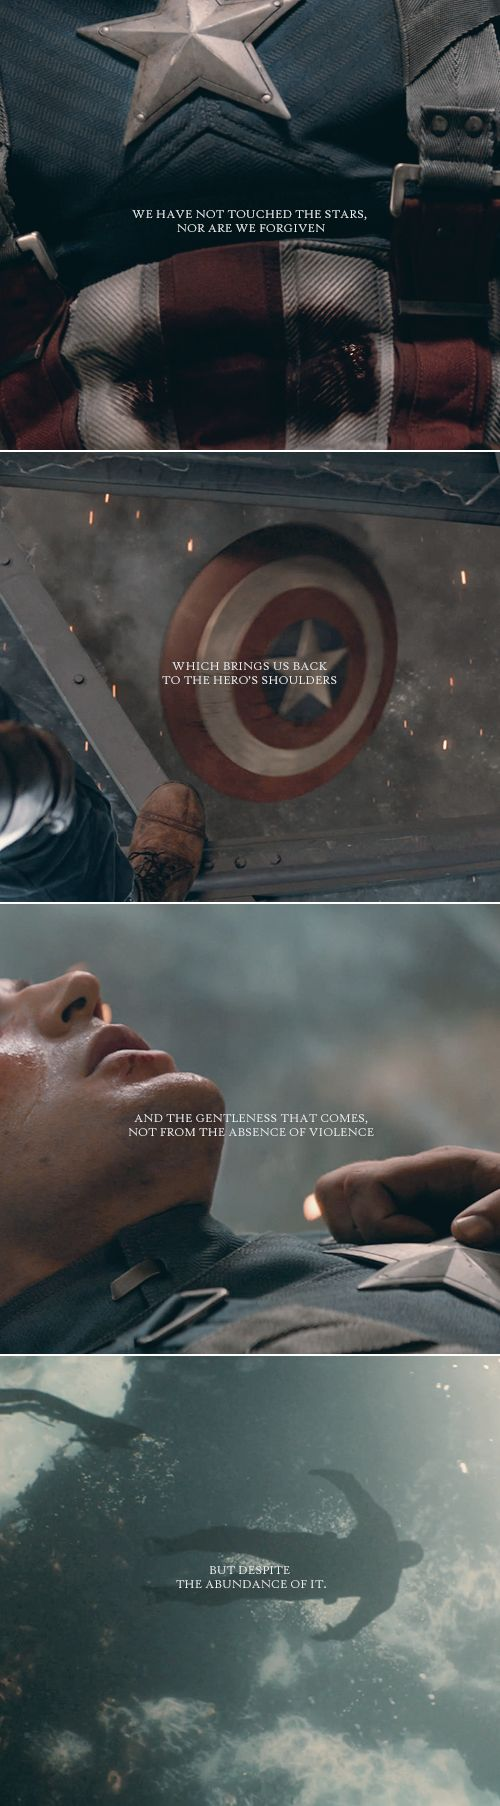 Captain America: We have not touched the stars nor are we forgiven which brings us back to the hero's shoulders and the gentleness that comes not from the absence of violence but despite the abundance of it.